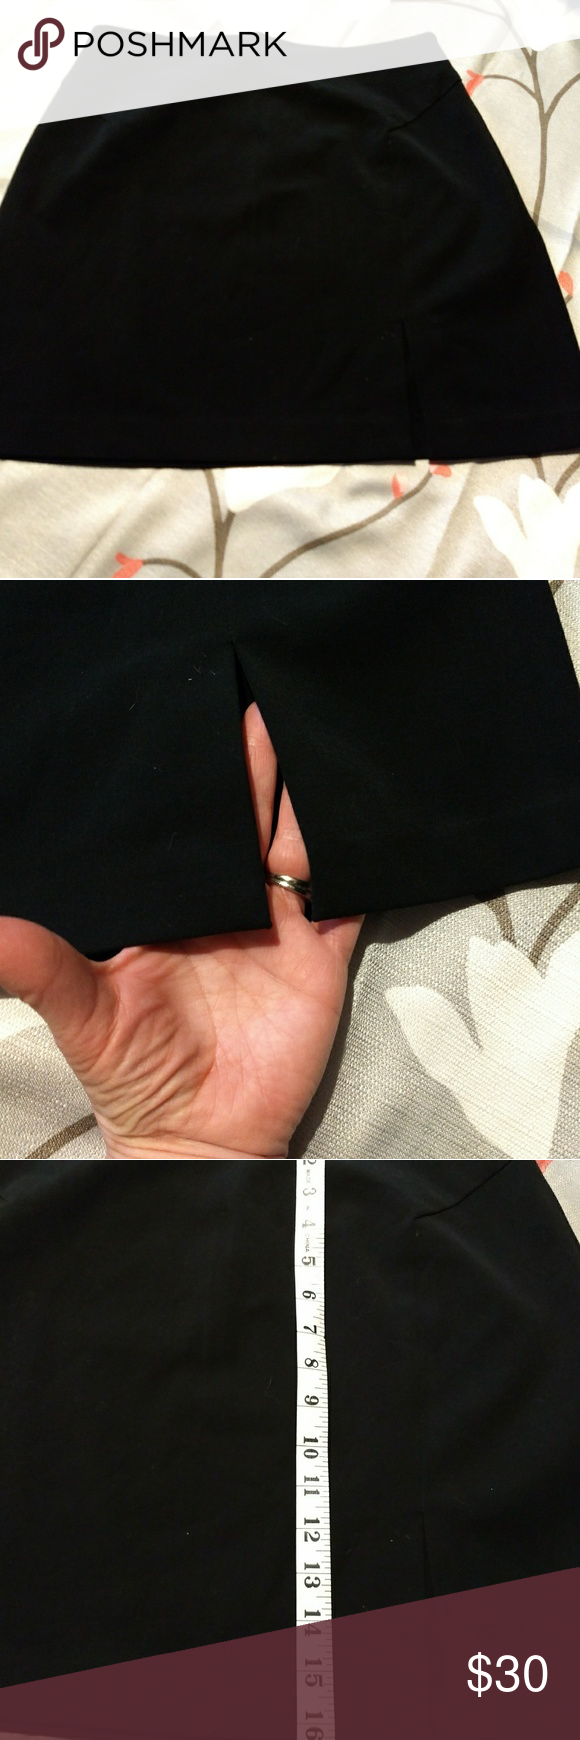 The Limited skirt Black polyester/rayon/Lycra stretch skirt; falls just above the knee. Nice zipper detail in back, short slit detail in front and darts as shown Unlined, dry clean only. Perfect for office dress. Very gently used, no visible flaws or imperfections. The Limited Skirts A-Line or Full